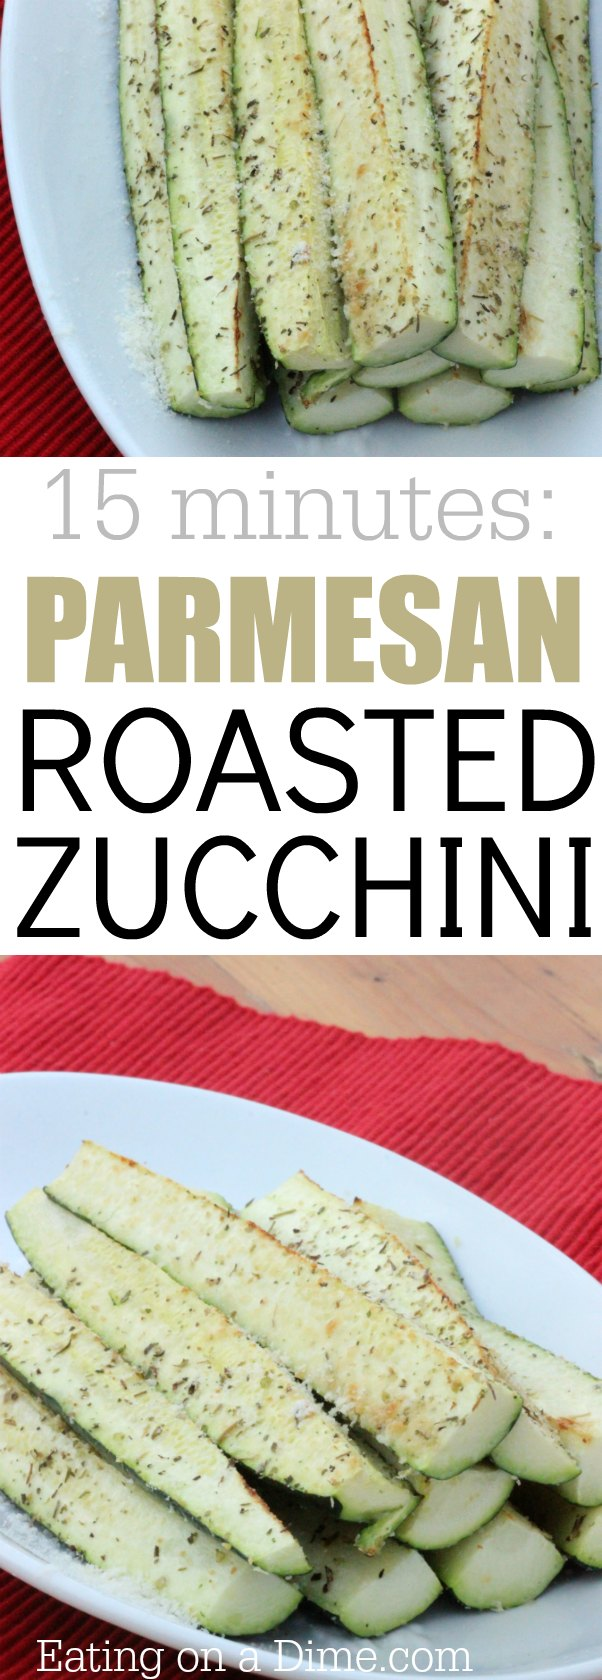 Parmesan Roasted Zucchini recipe is easy to make and tastes great. Cooking zucchini isn't hard. This is one of my favorite healthy zucchini recipes.